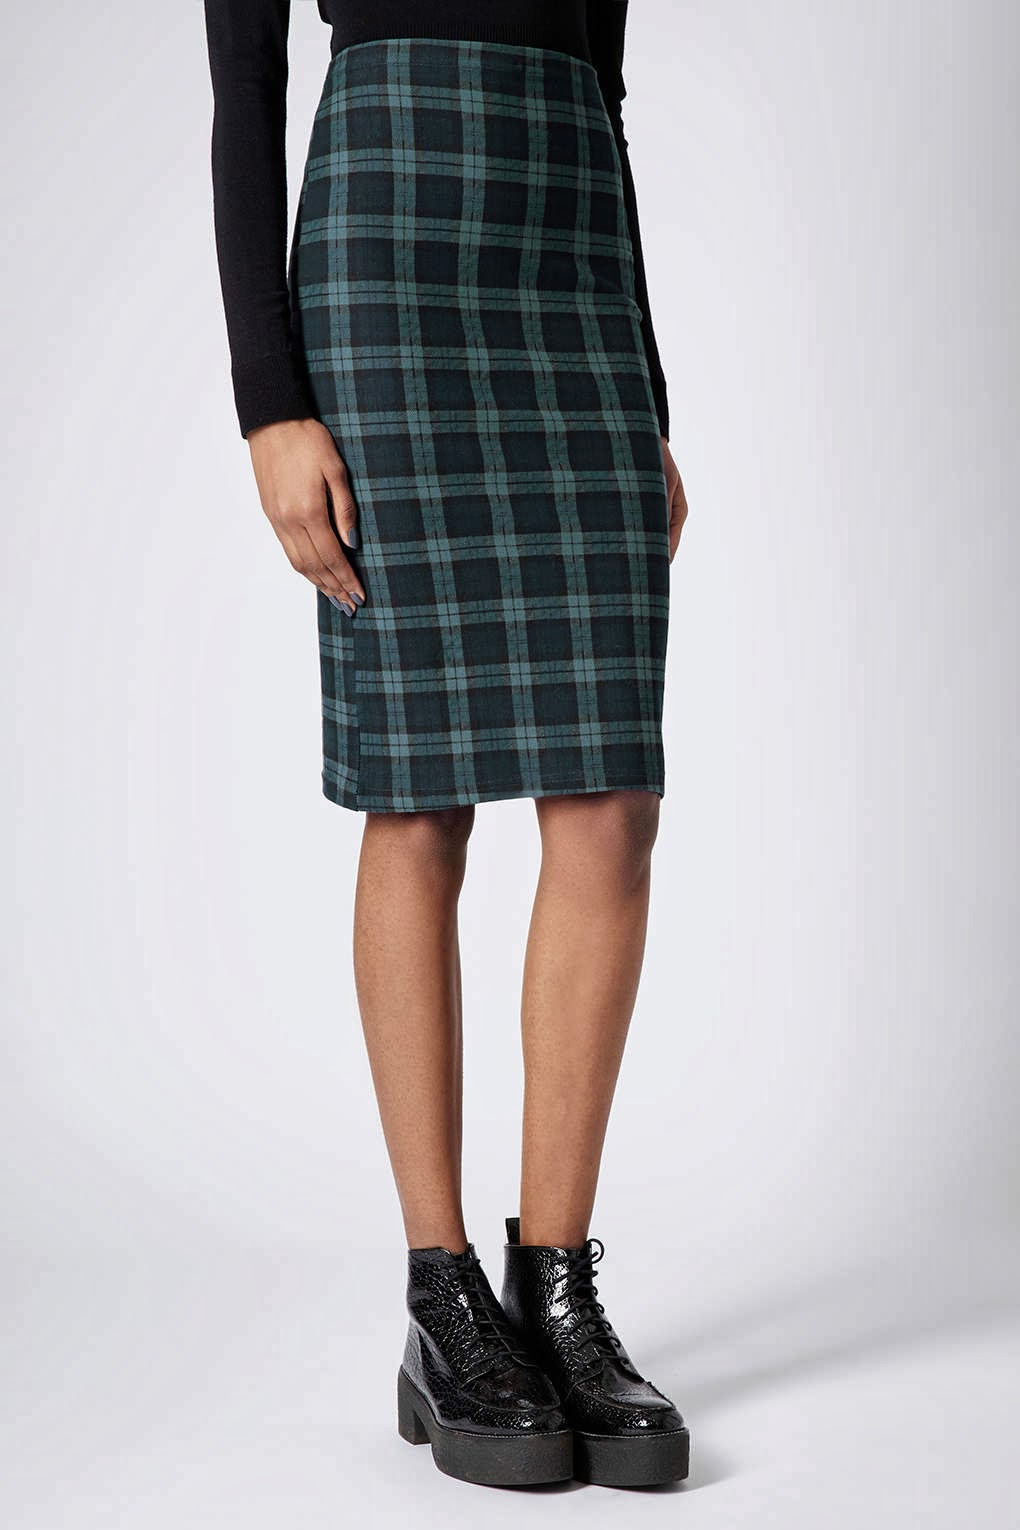 green check skirt